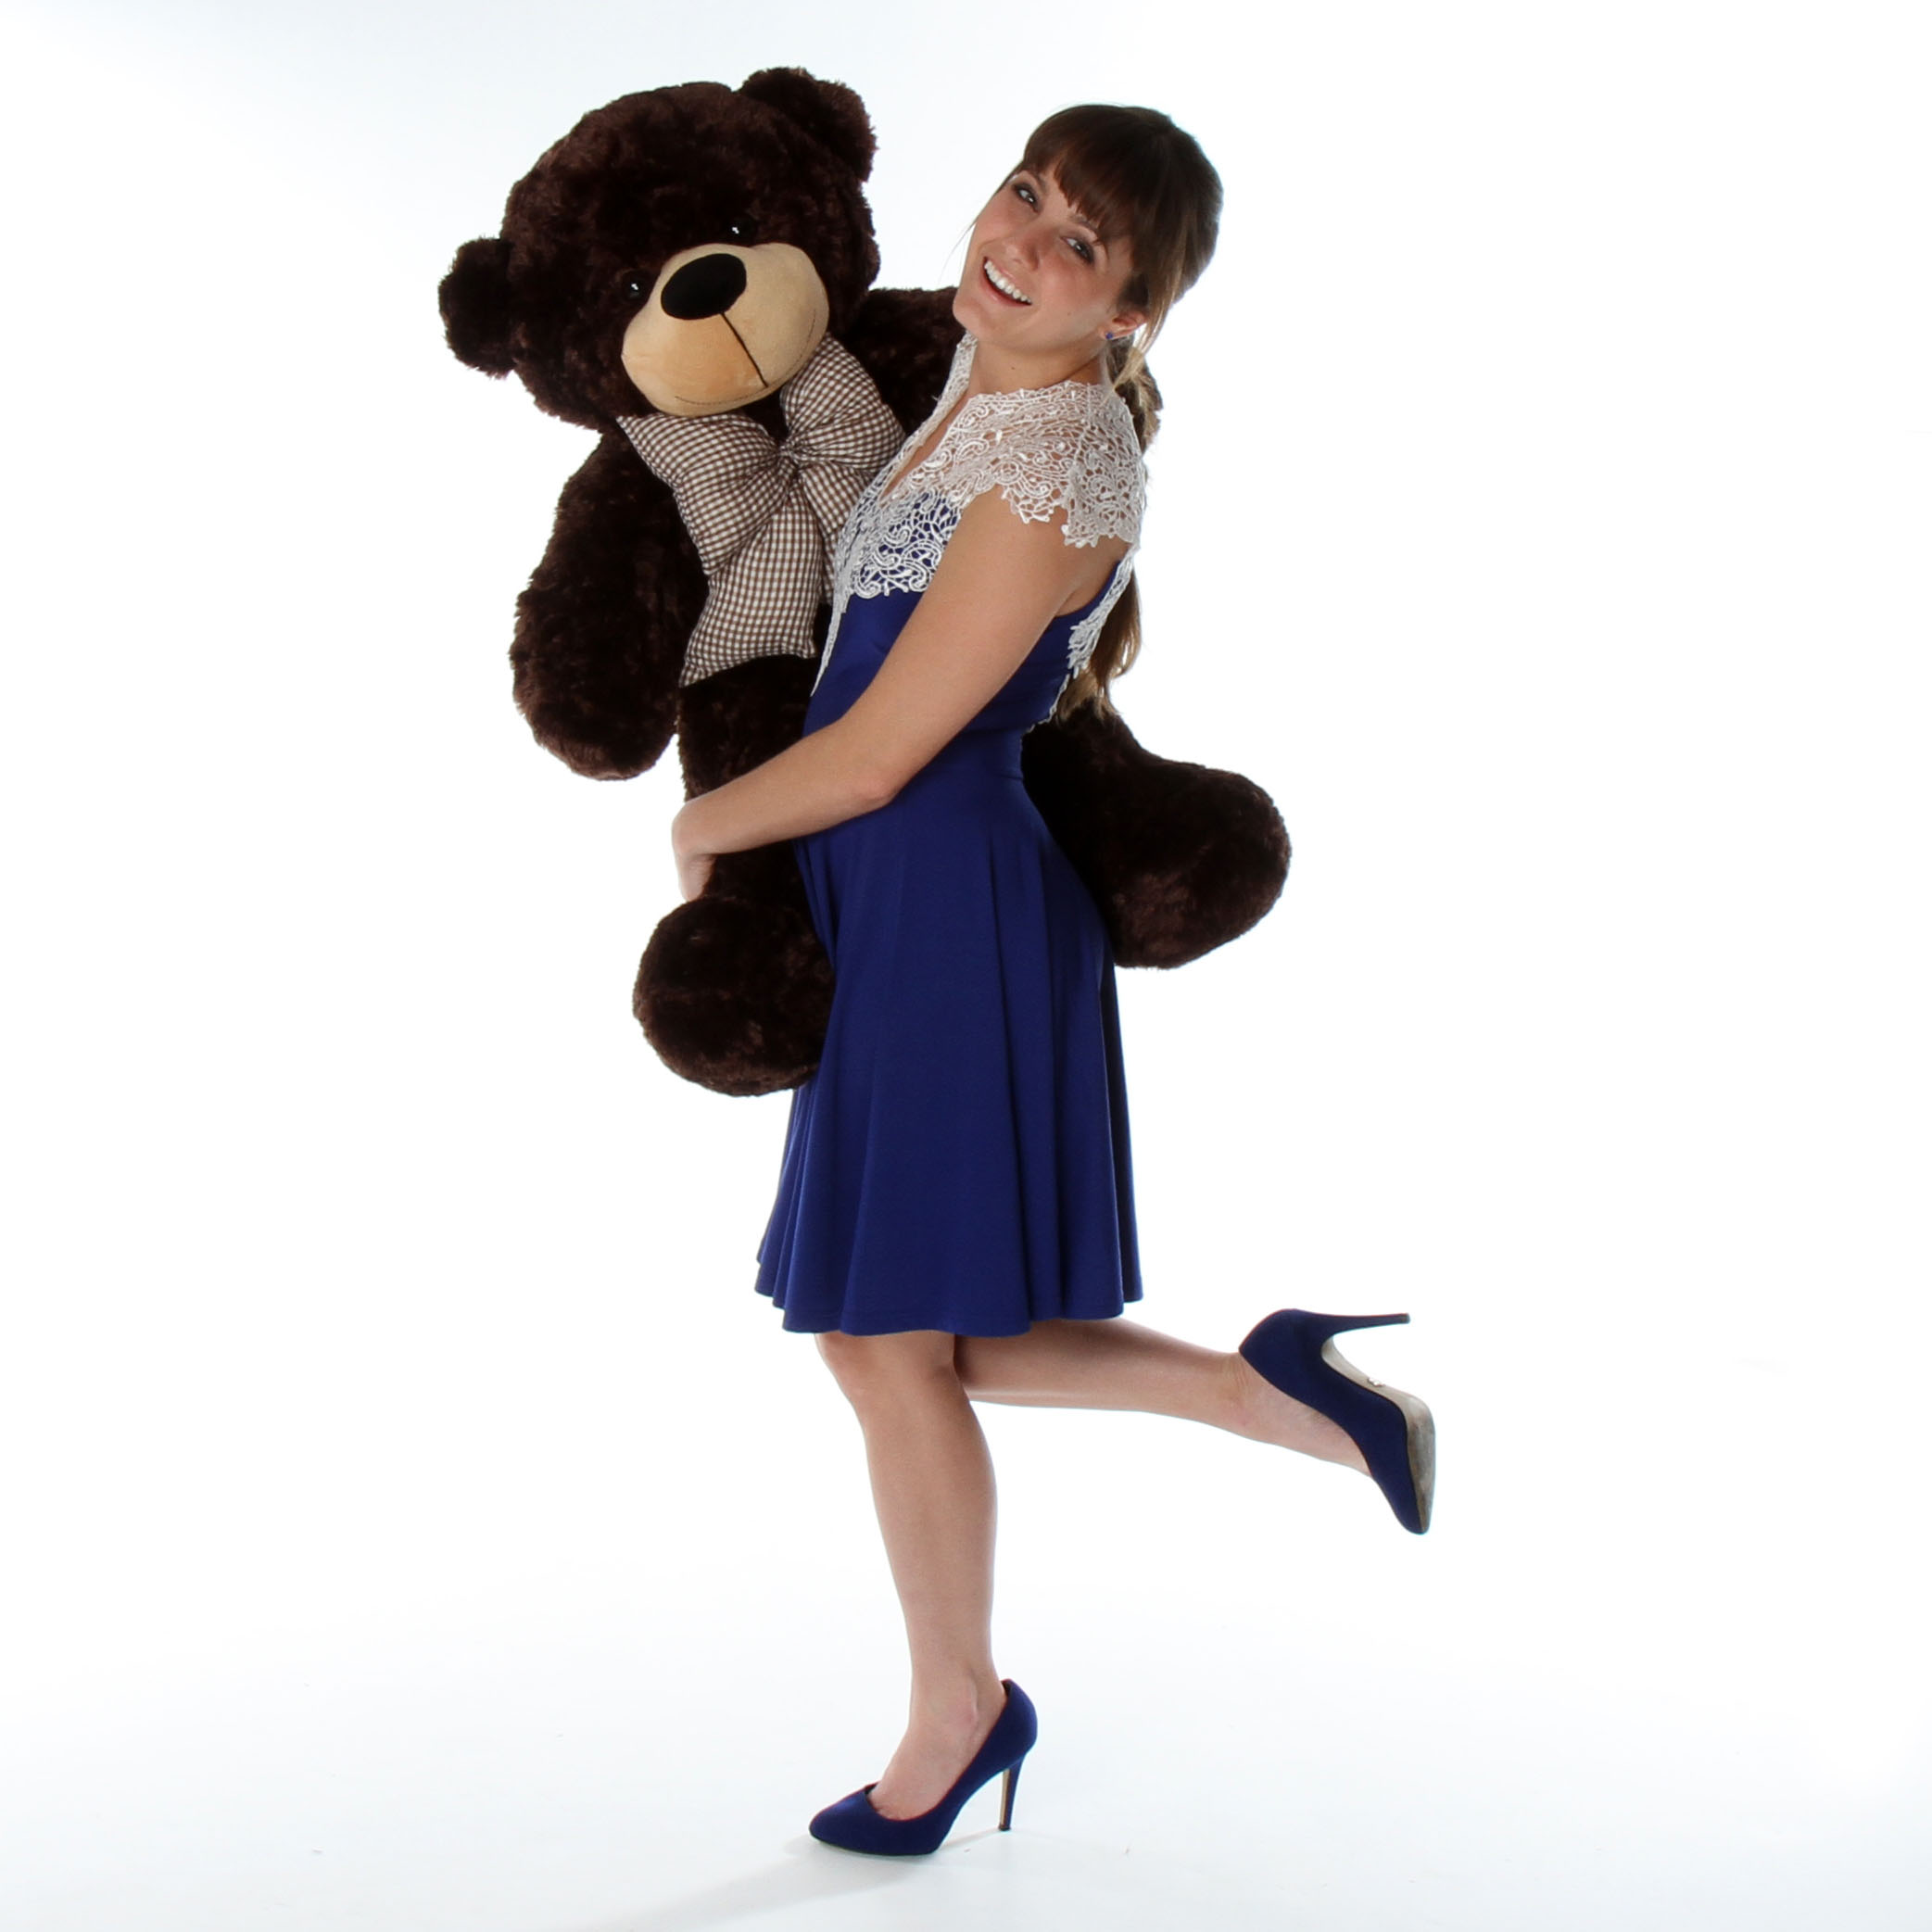 tall-dark-handsome-and-cuddly-38in-life-size-giant-teddy-bear-brownie-cuddles-dk-brown-fur.jpg